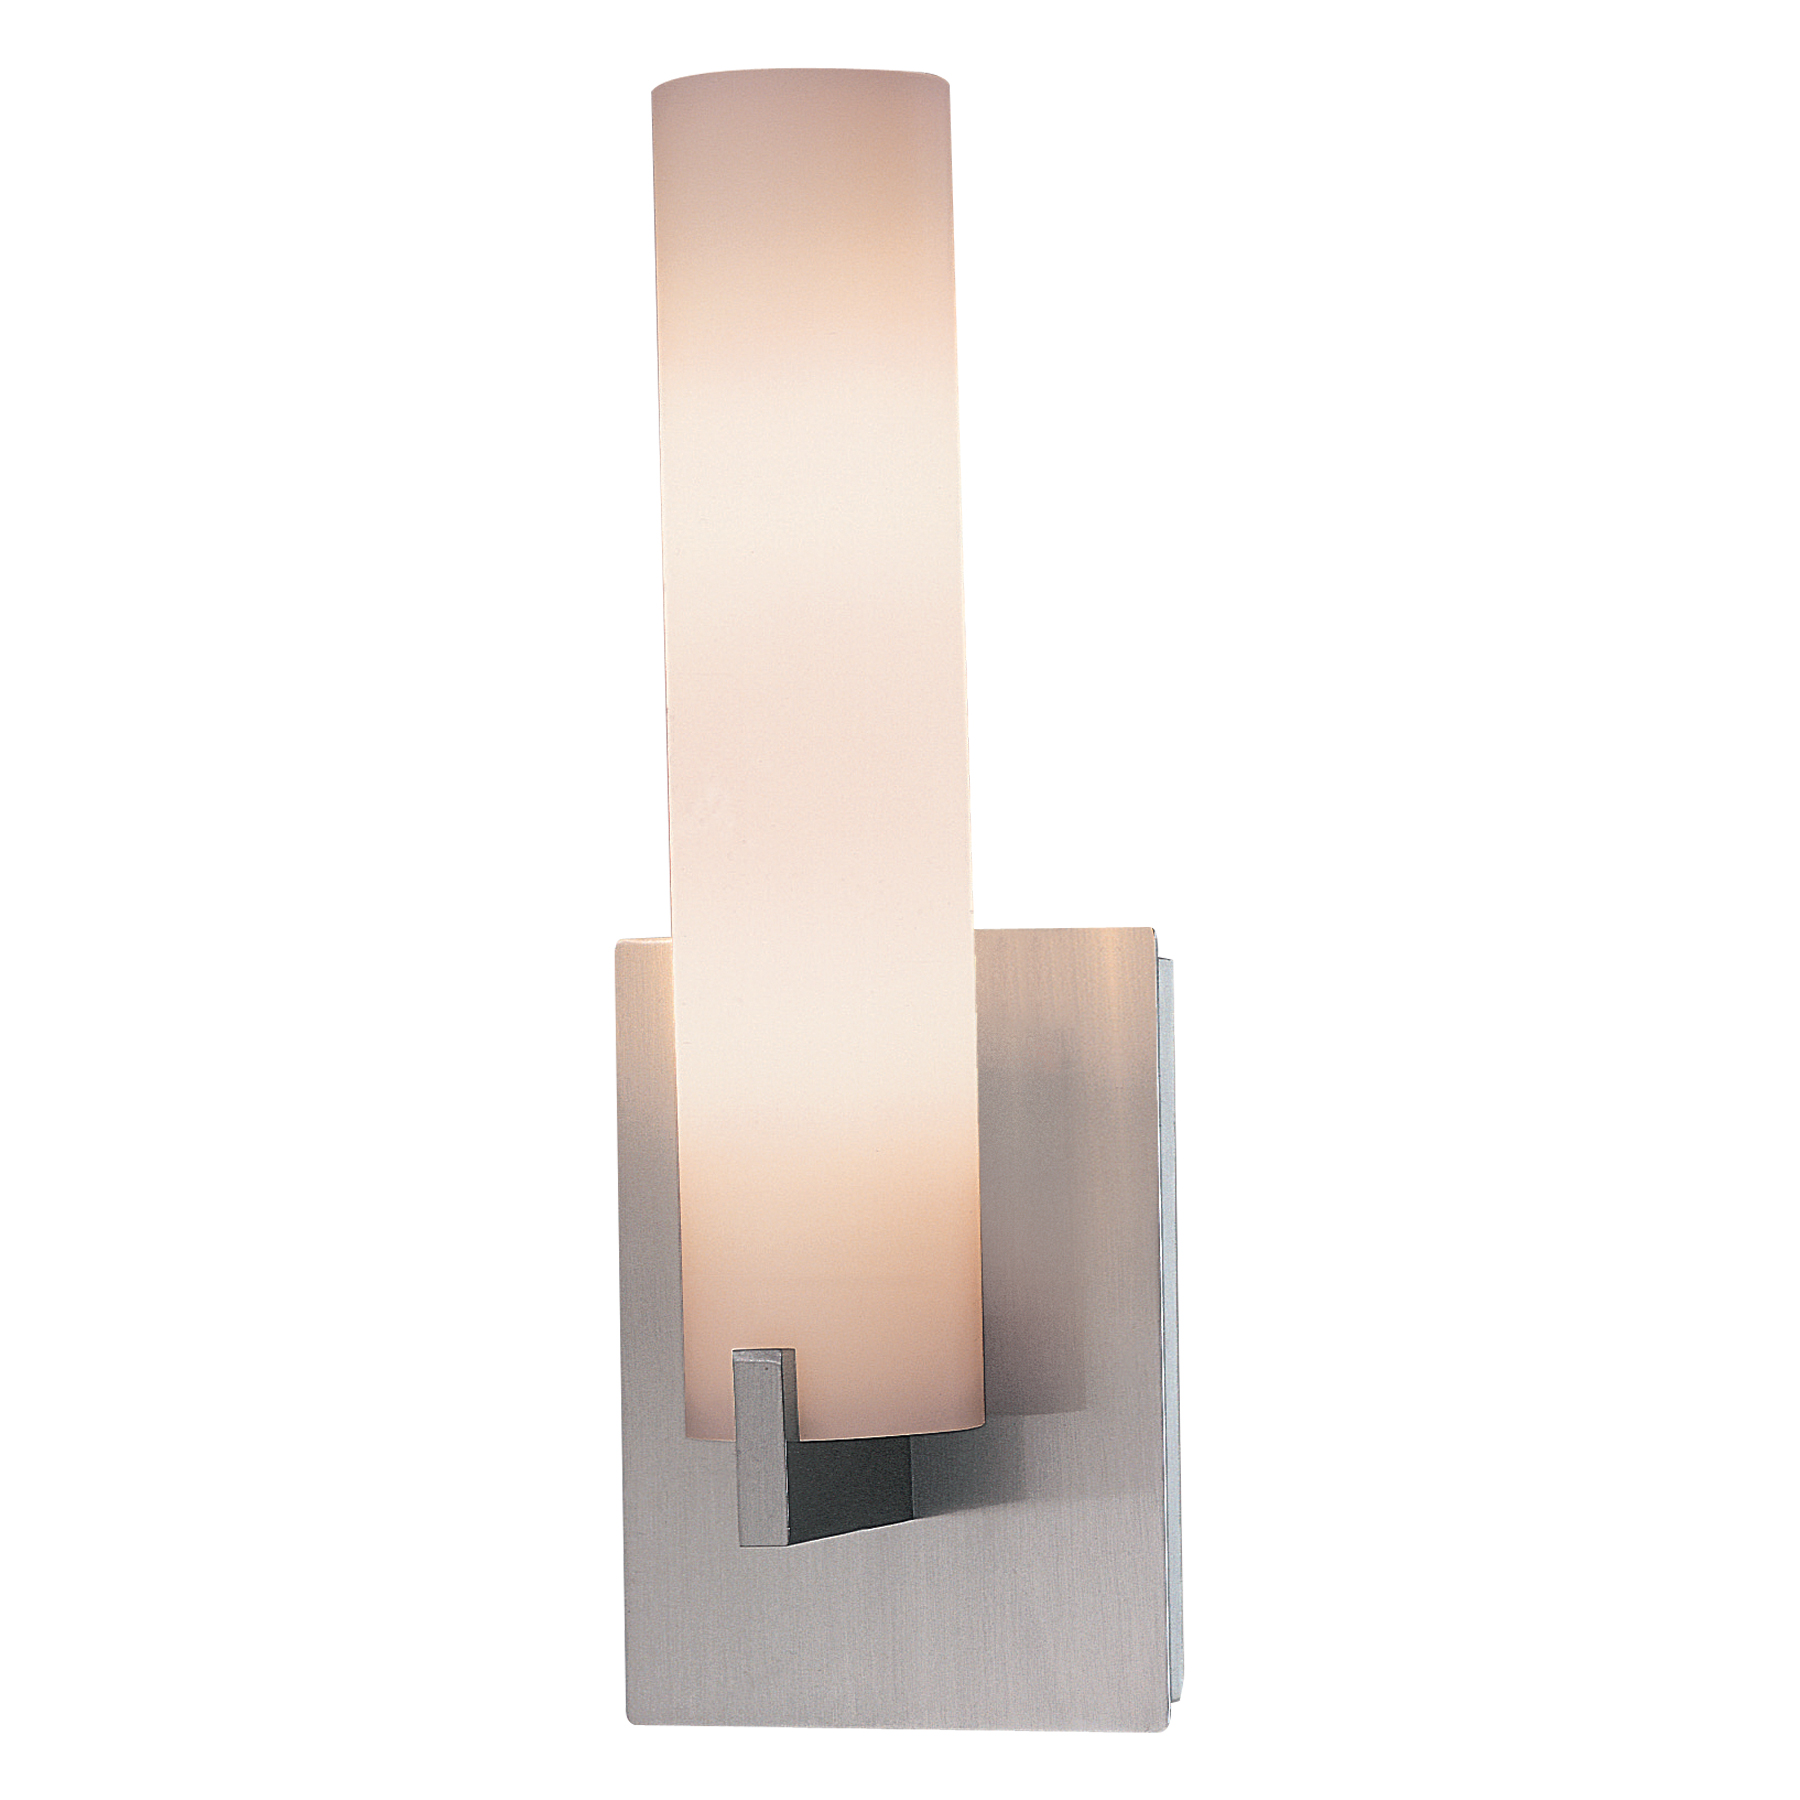 Attrayant Tube Vanity Wall Sconce By George Kovacs | P5040 084